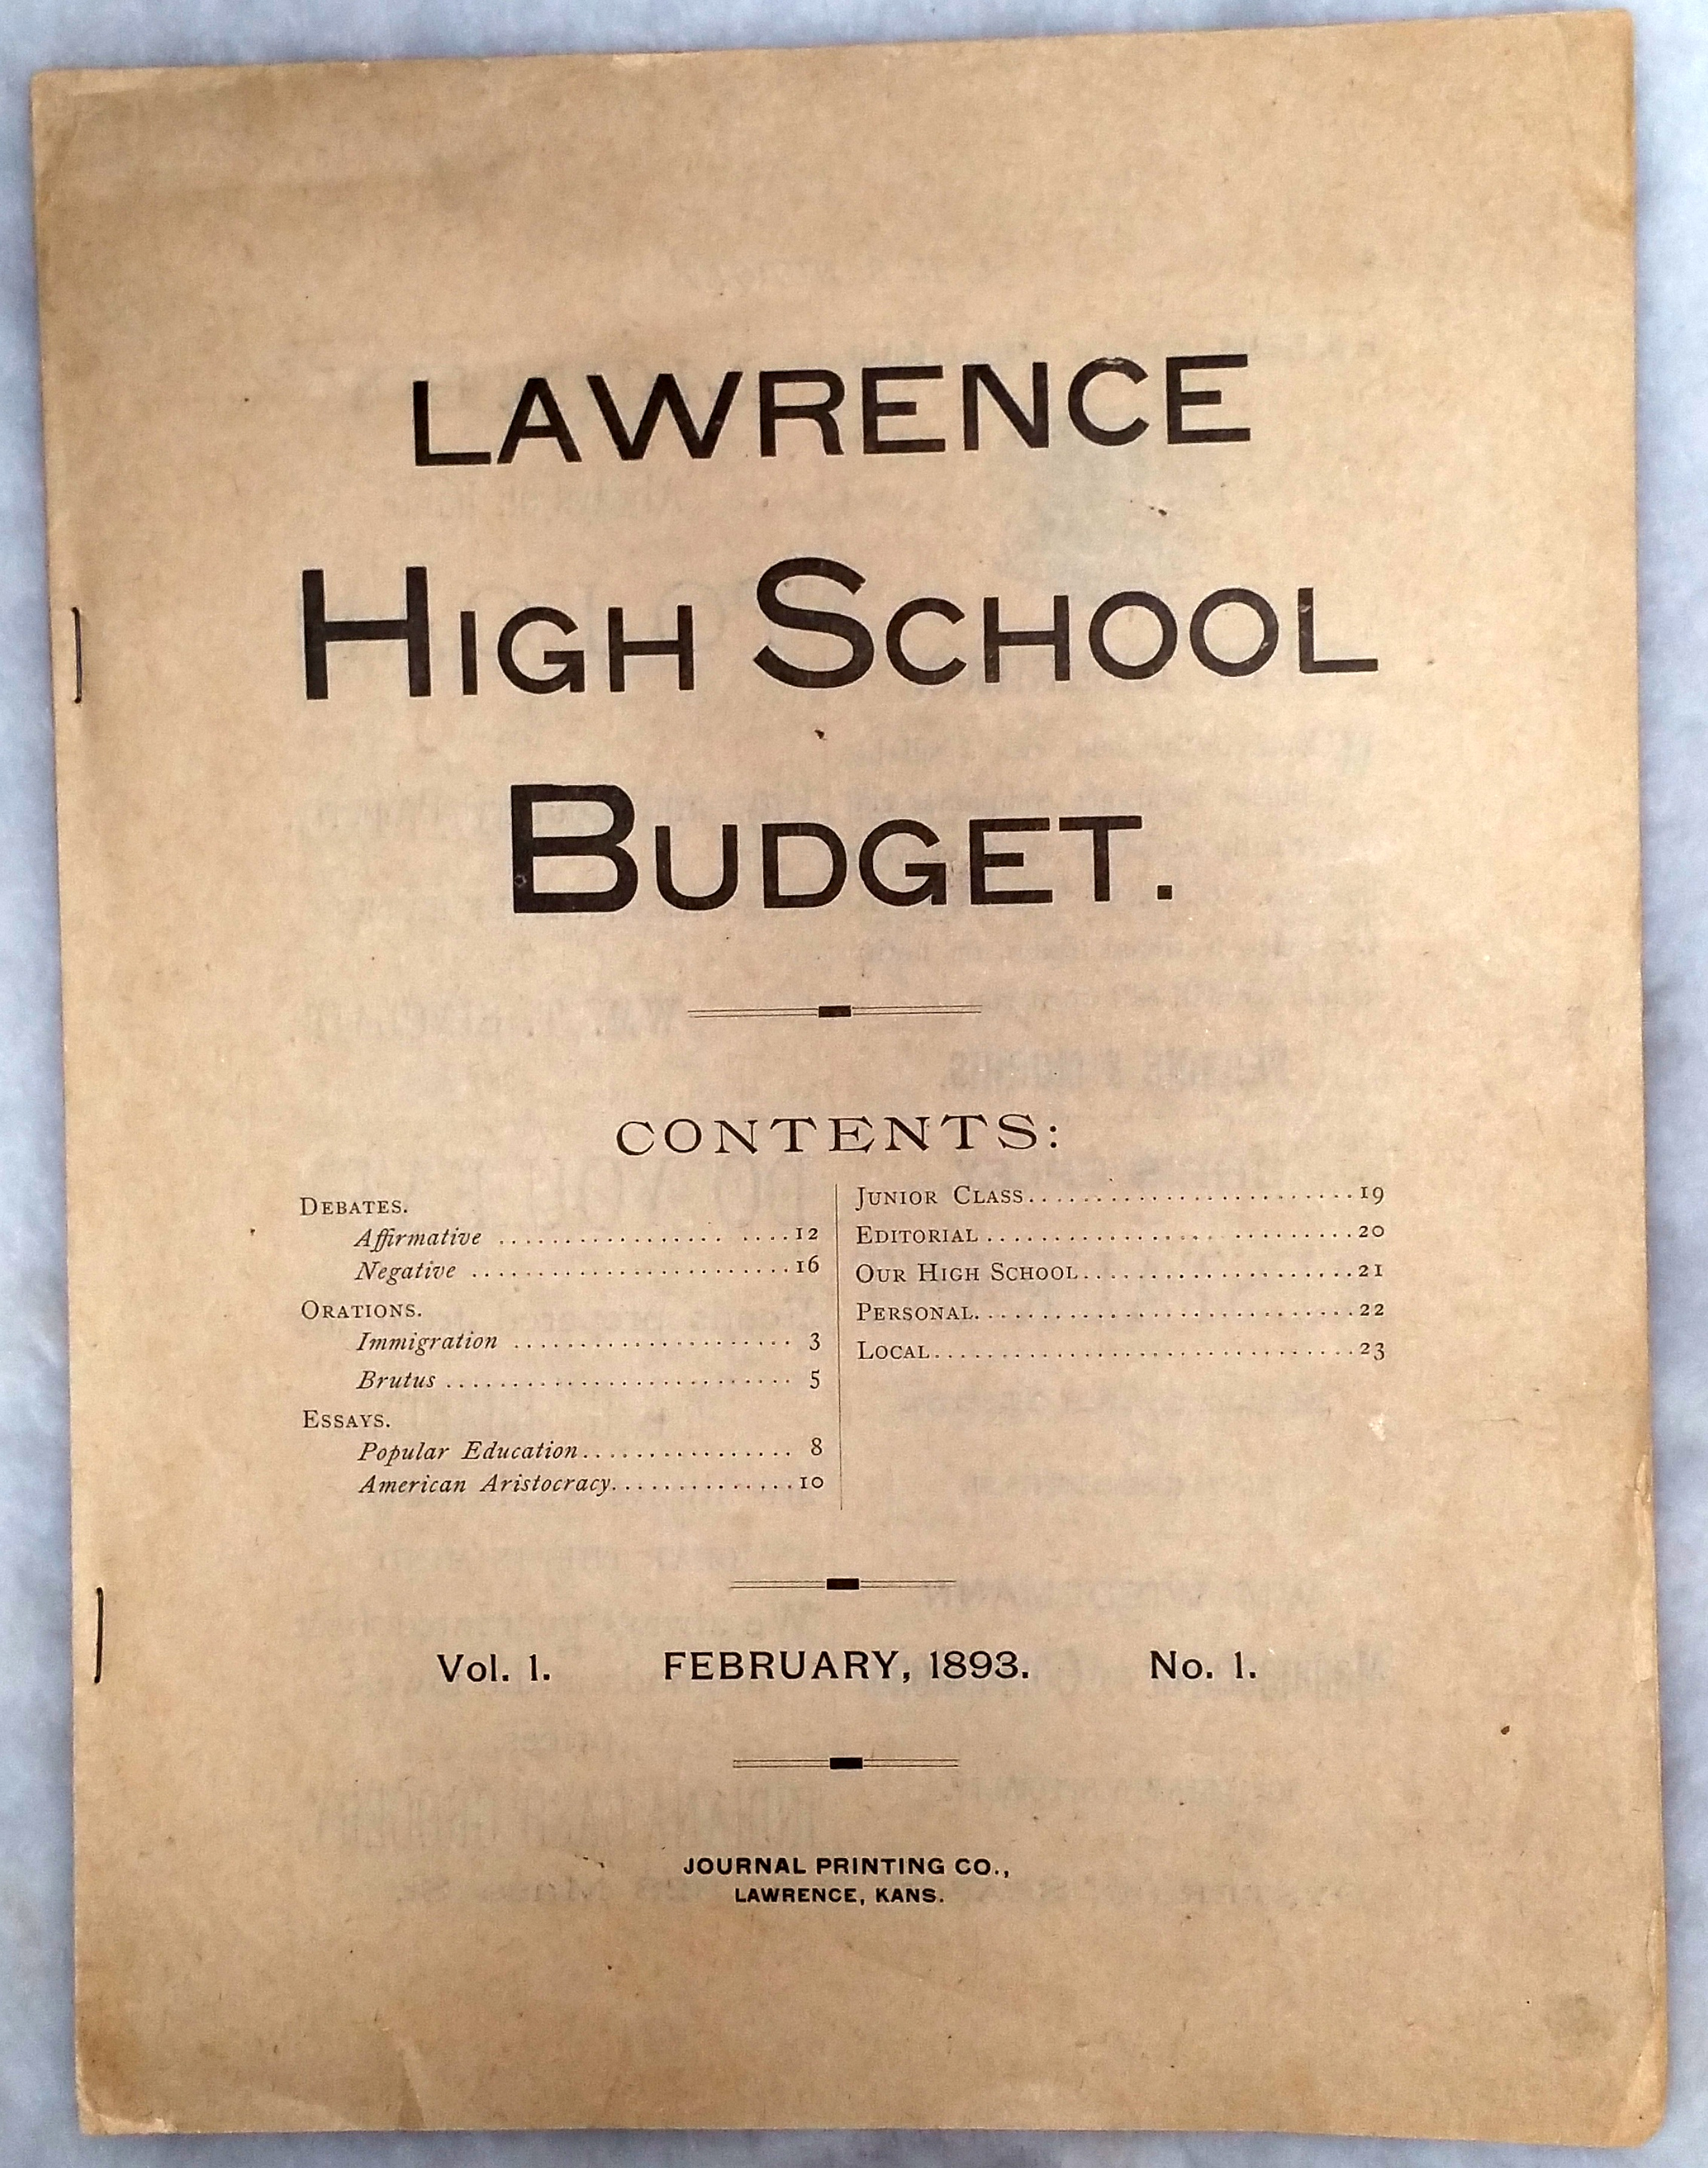 Image for L. H. S. [Lawrence High School] Budget, Vol. 1, No. 1, February 22, 1893